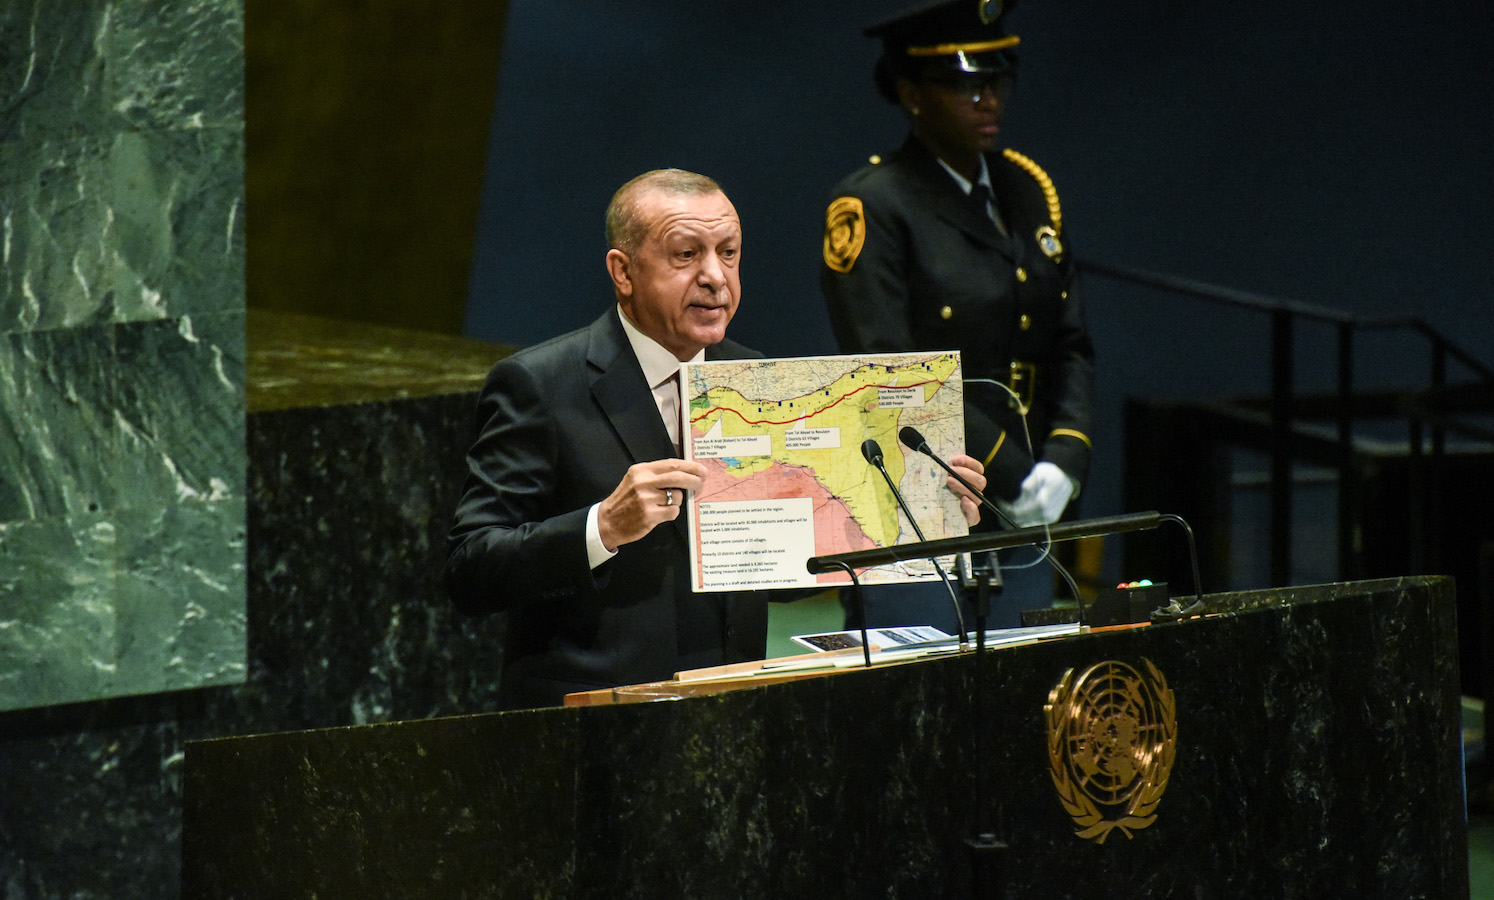 Turkey Pitches Plan to Settle 1 Million Refugees in Northern Syria